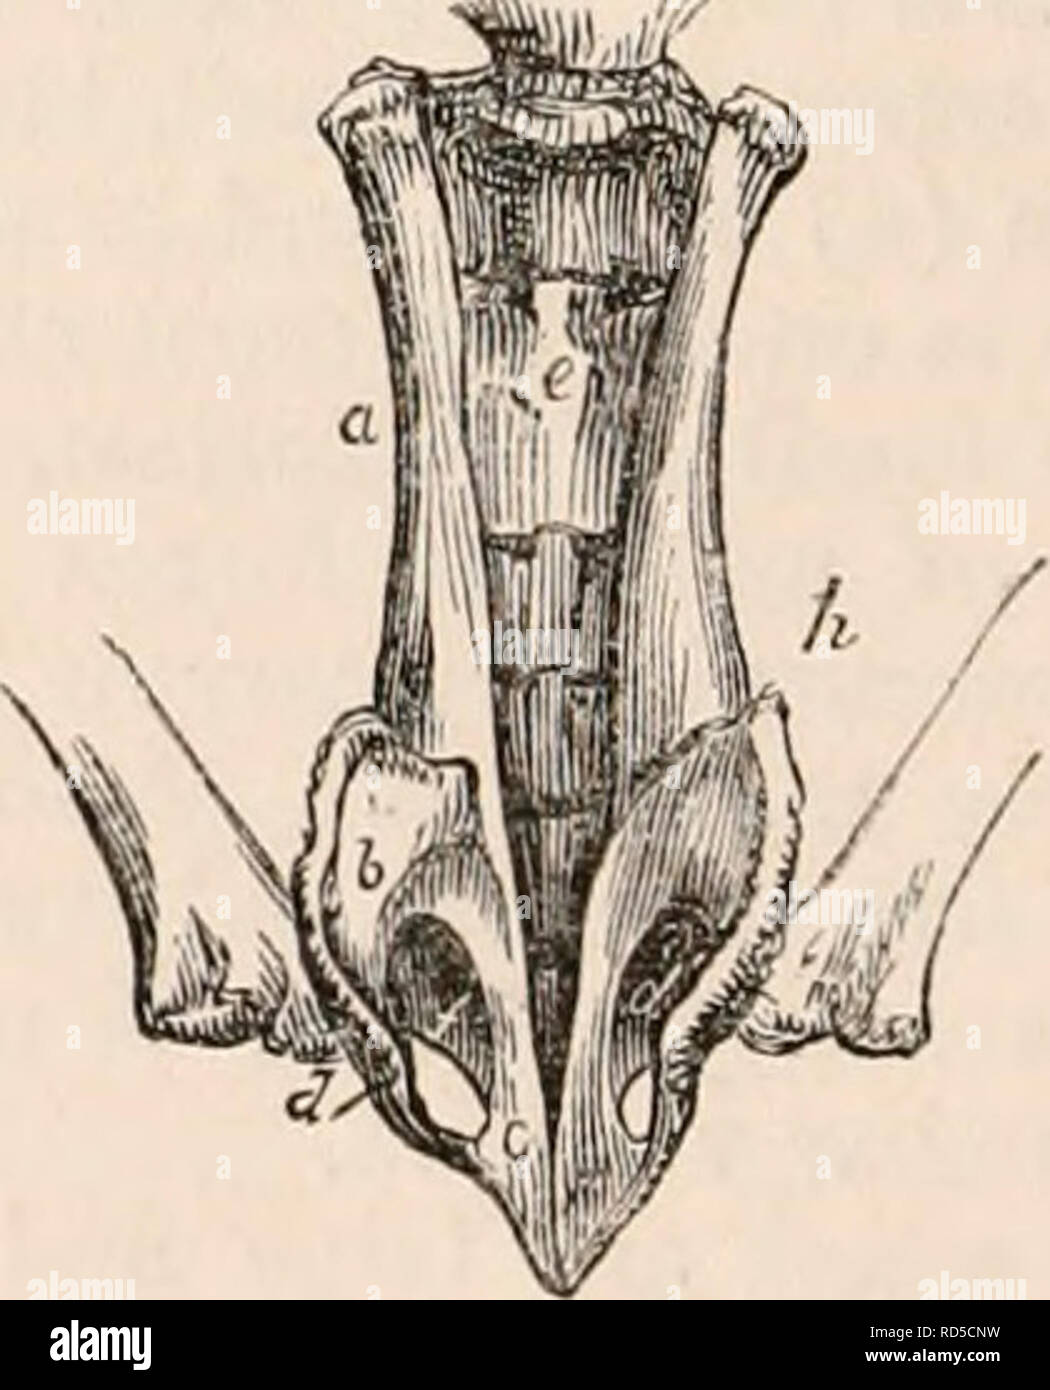 . The cyclopædia of anatomy and physiology. Anatomy; Physiology; Zoology. Pelvis of the Cape Ant-eater, side view. In the great American Ant-eater, both the ilia and ischia abut closely on the sacral trans- verse processes, presenting a faint suture at the line of junction. The pelvis is proportion- ately smaller and lighter, and the processes and spines much less marked than in the Cape Ant- eater. The lumbo-iliac angle in the Ant-eaters is 140°, the ilio-ischial 140° ; and the ilio-pubic is reversed, and about 155°. The Manis possess pelves of the same ge- neral heavy appearance as the Ameri - Stock Image